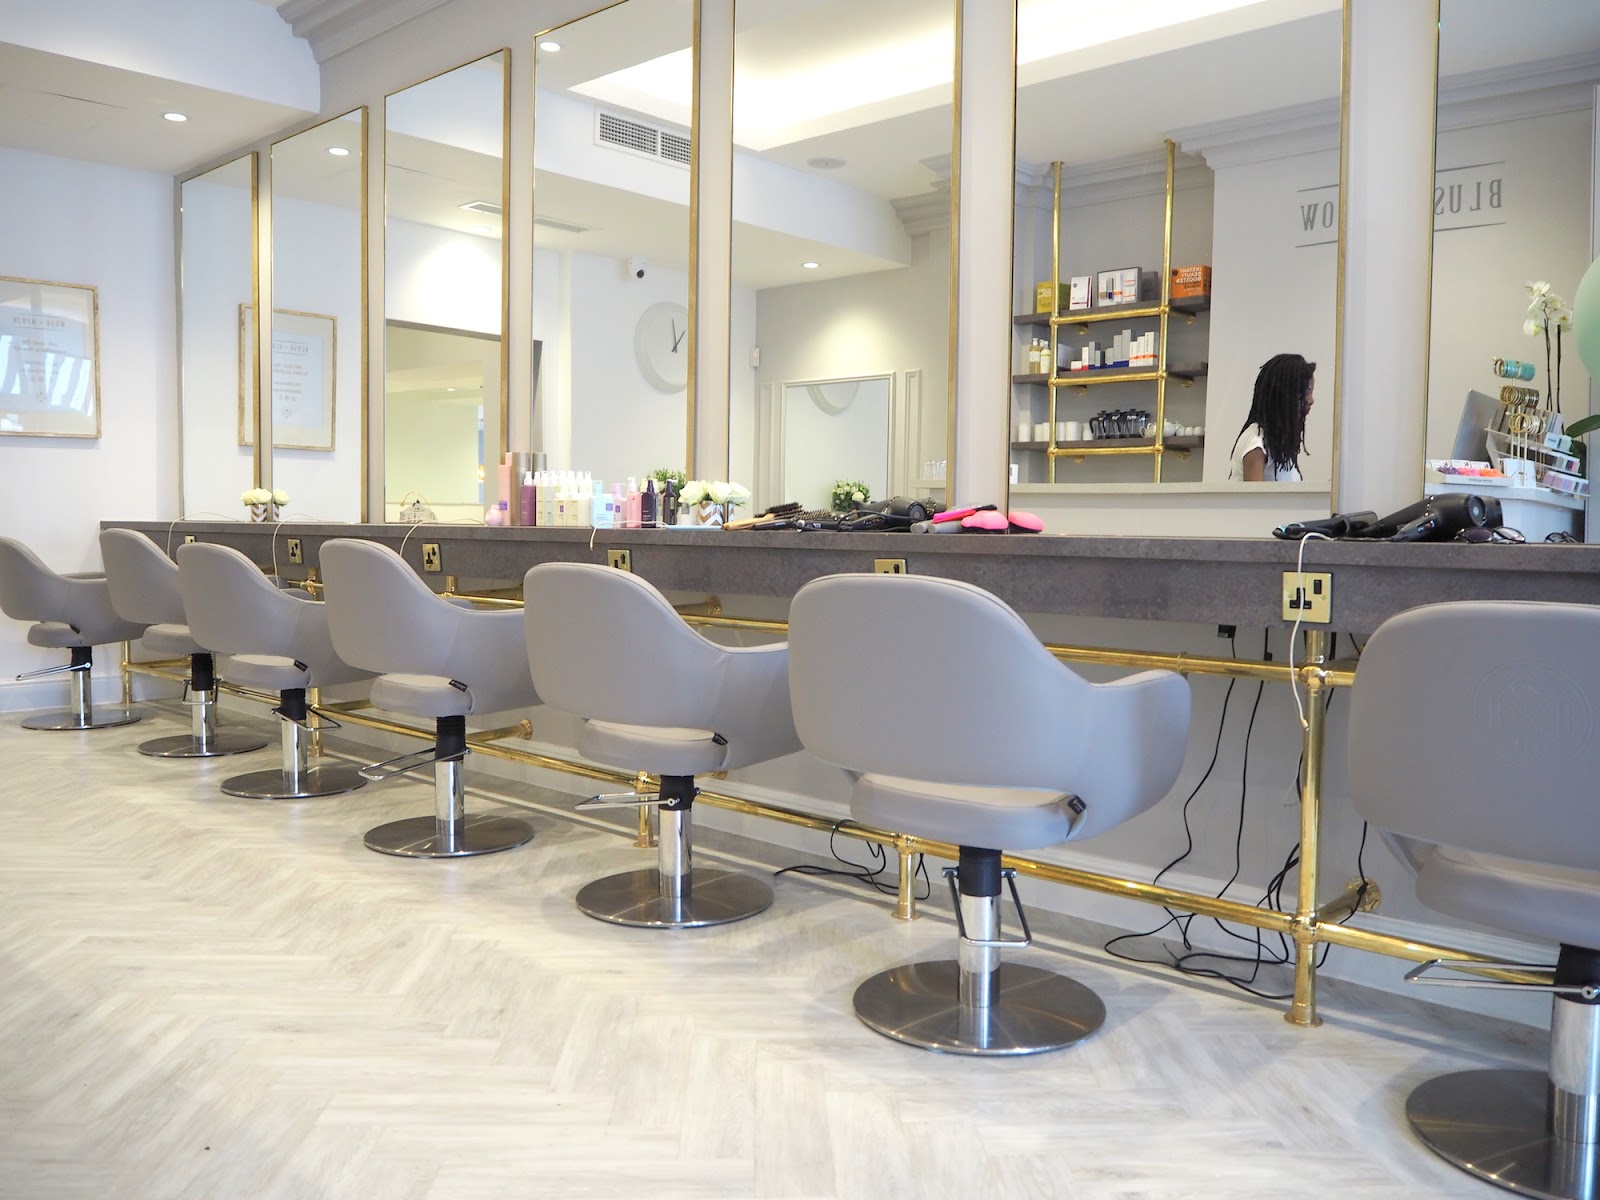 The Most Instagram-Worthy Salon: Blush + Blow